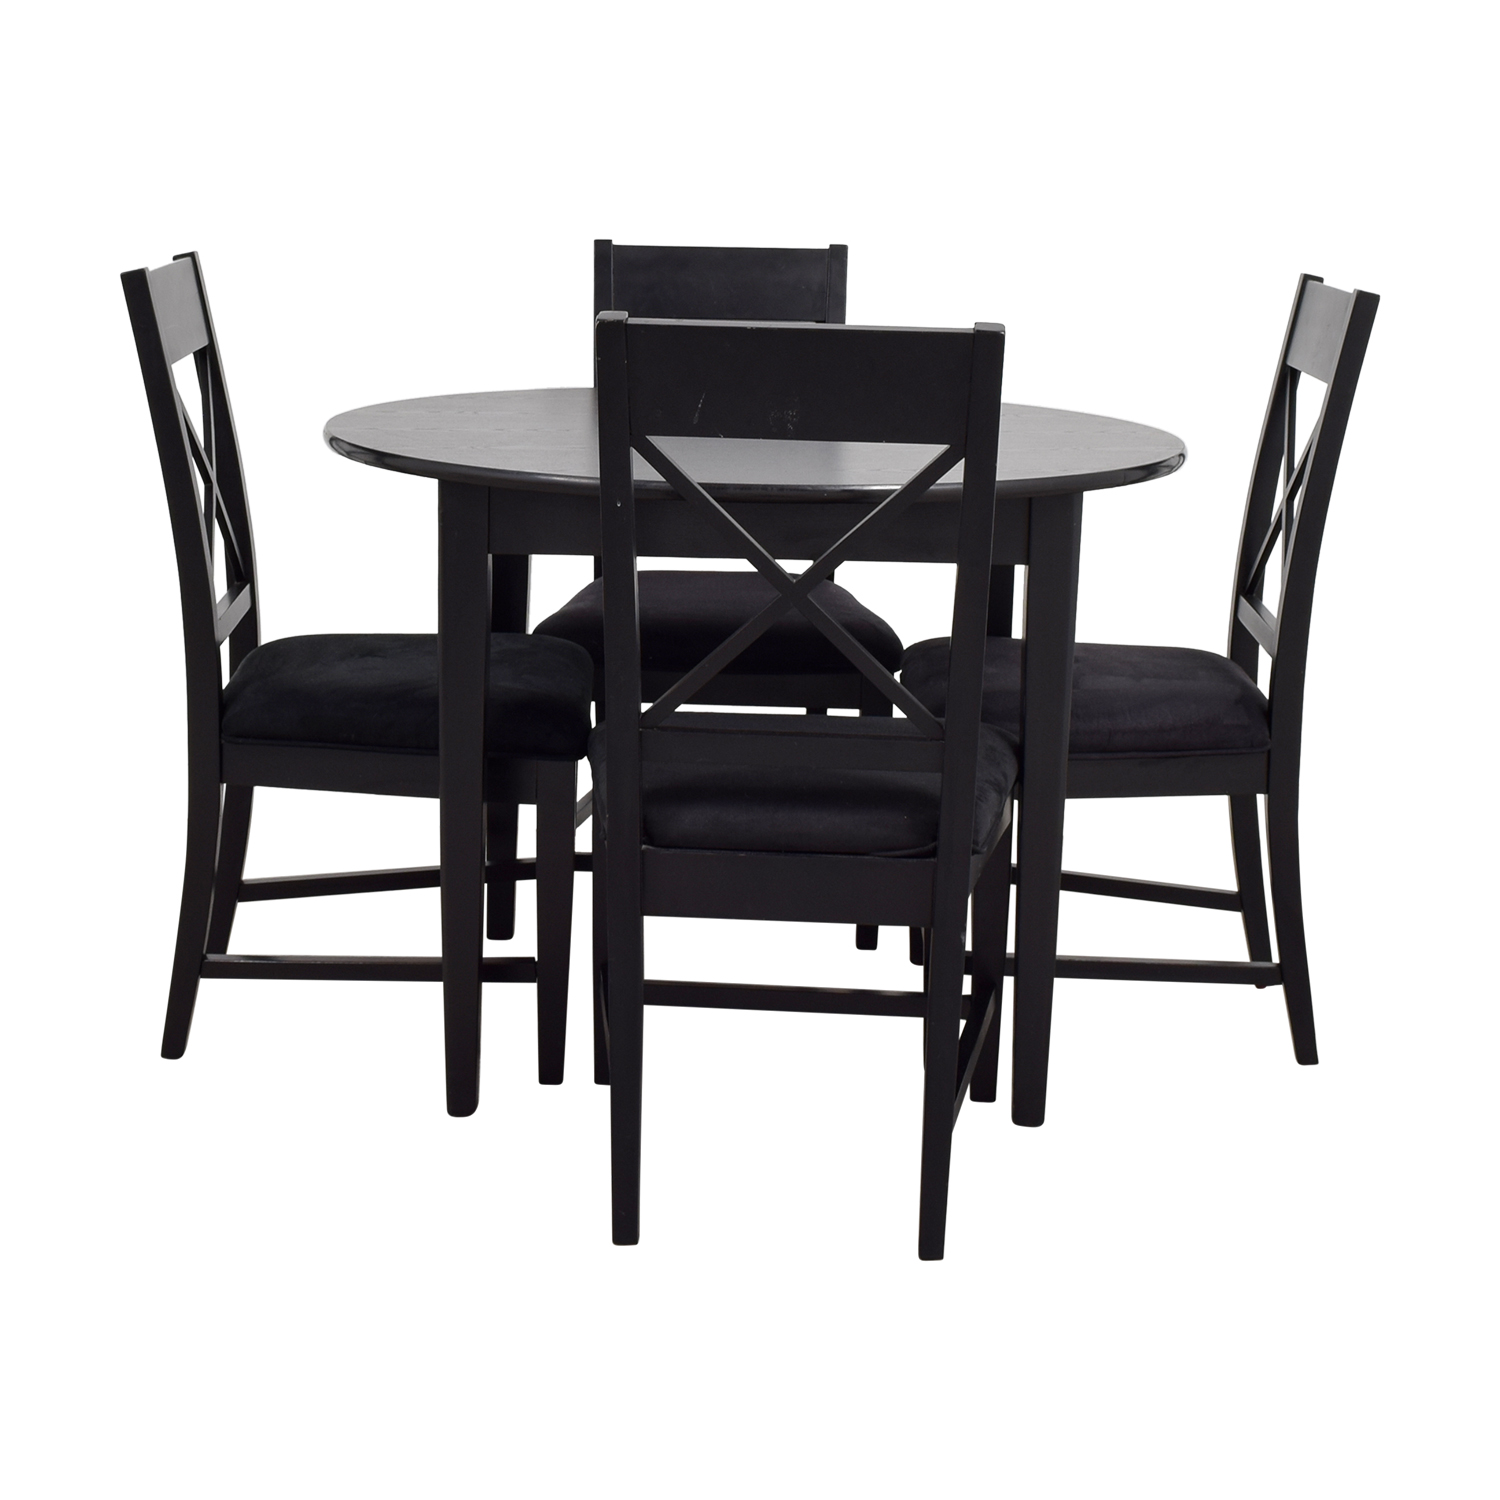 Round Black Wood Dining Set price